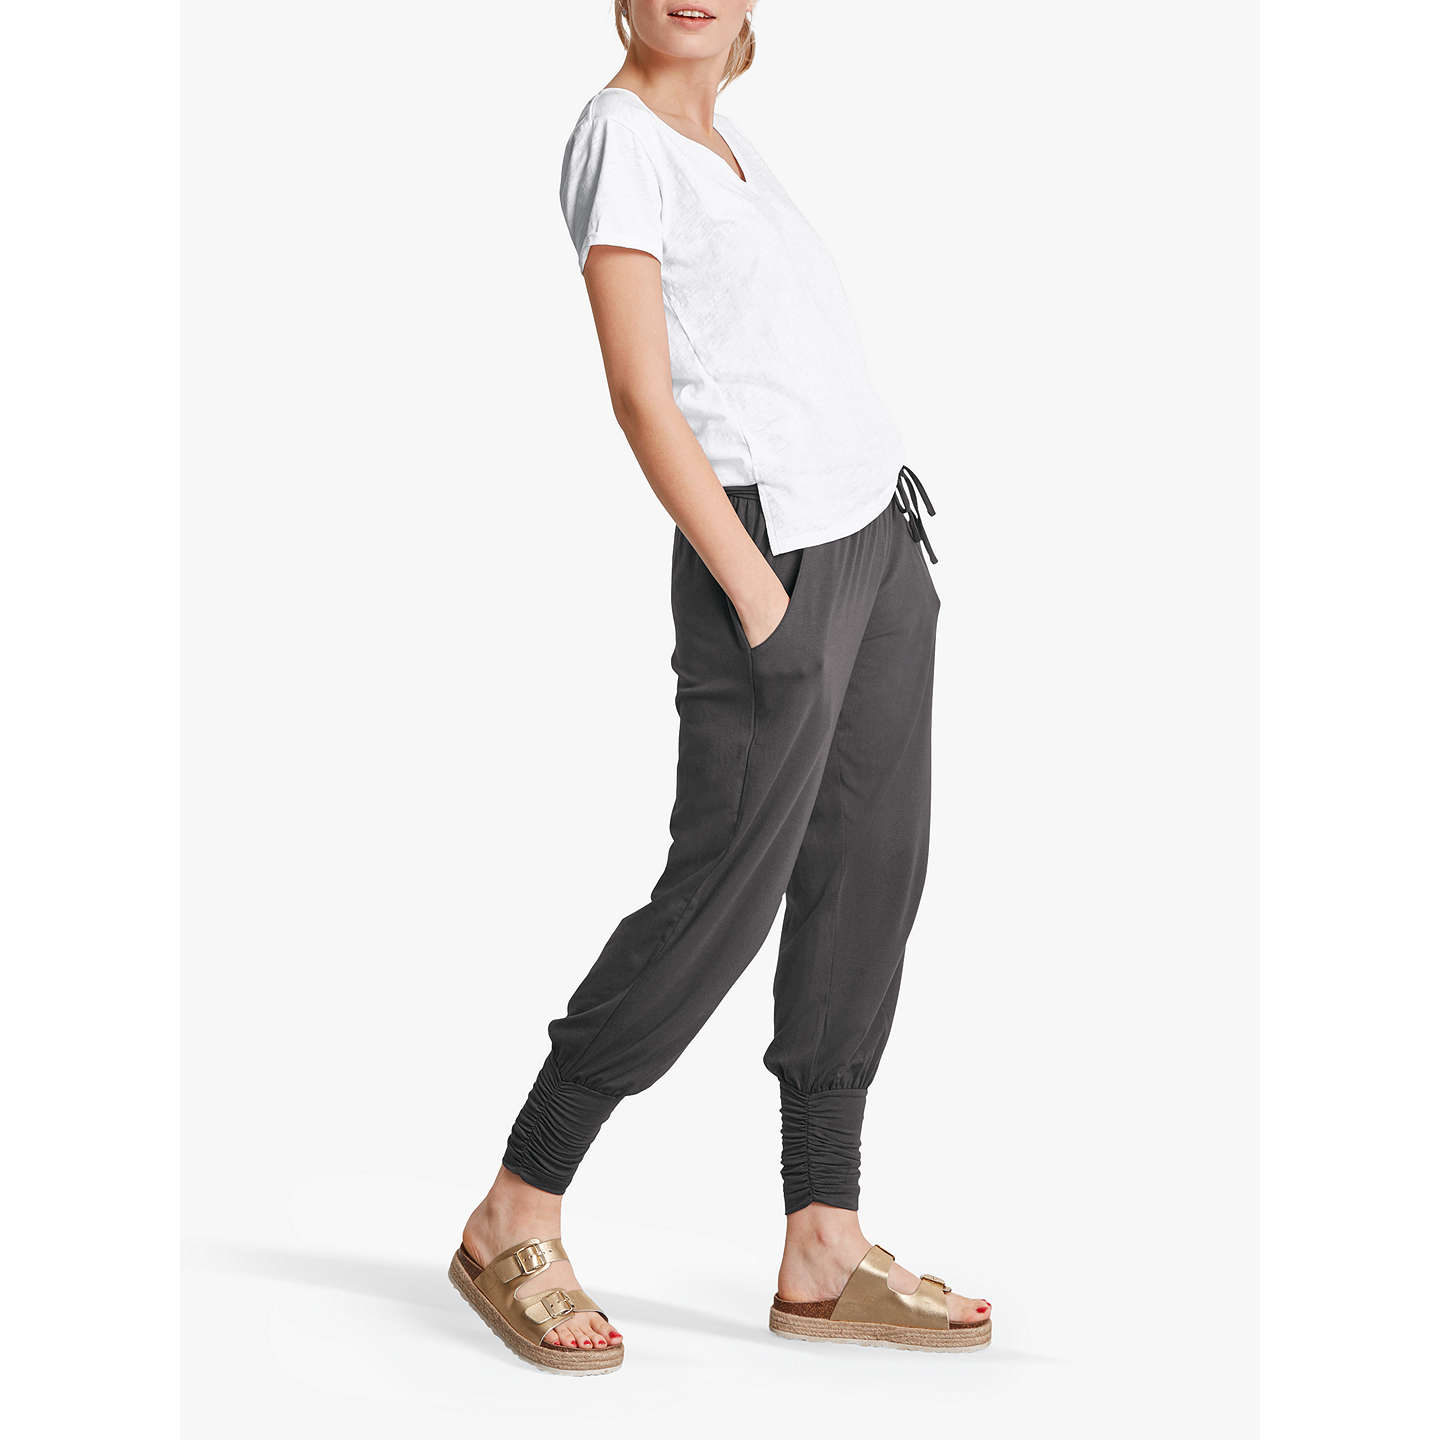 Buyhush Long Haram Trousers, Charcoal, XS Online at johnlewis.com